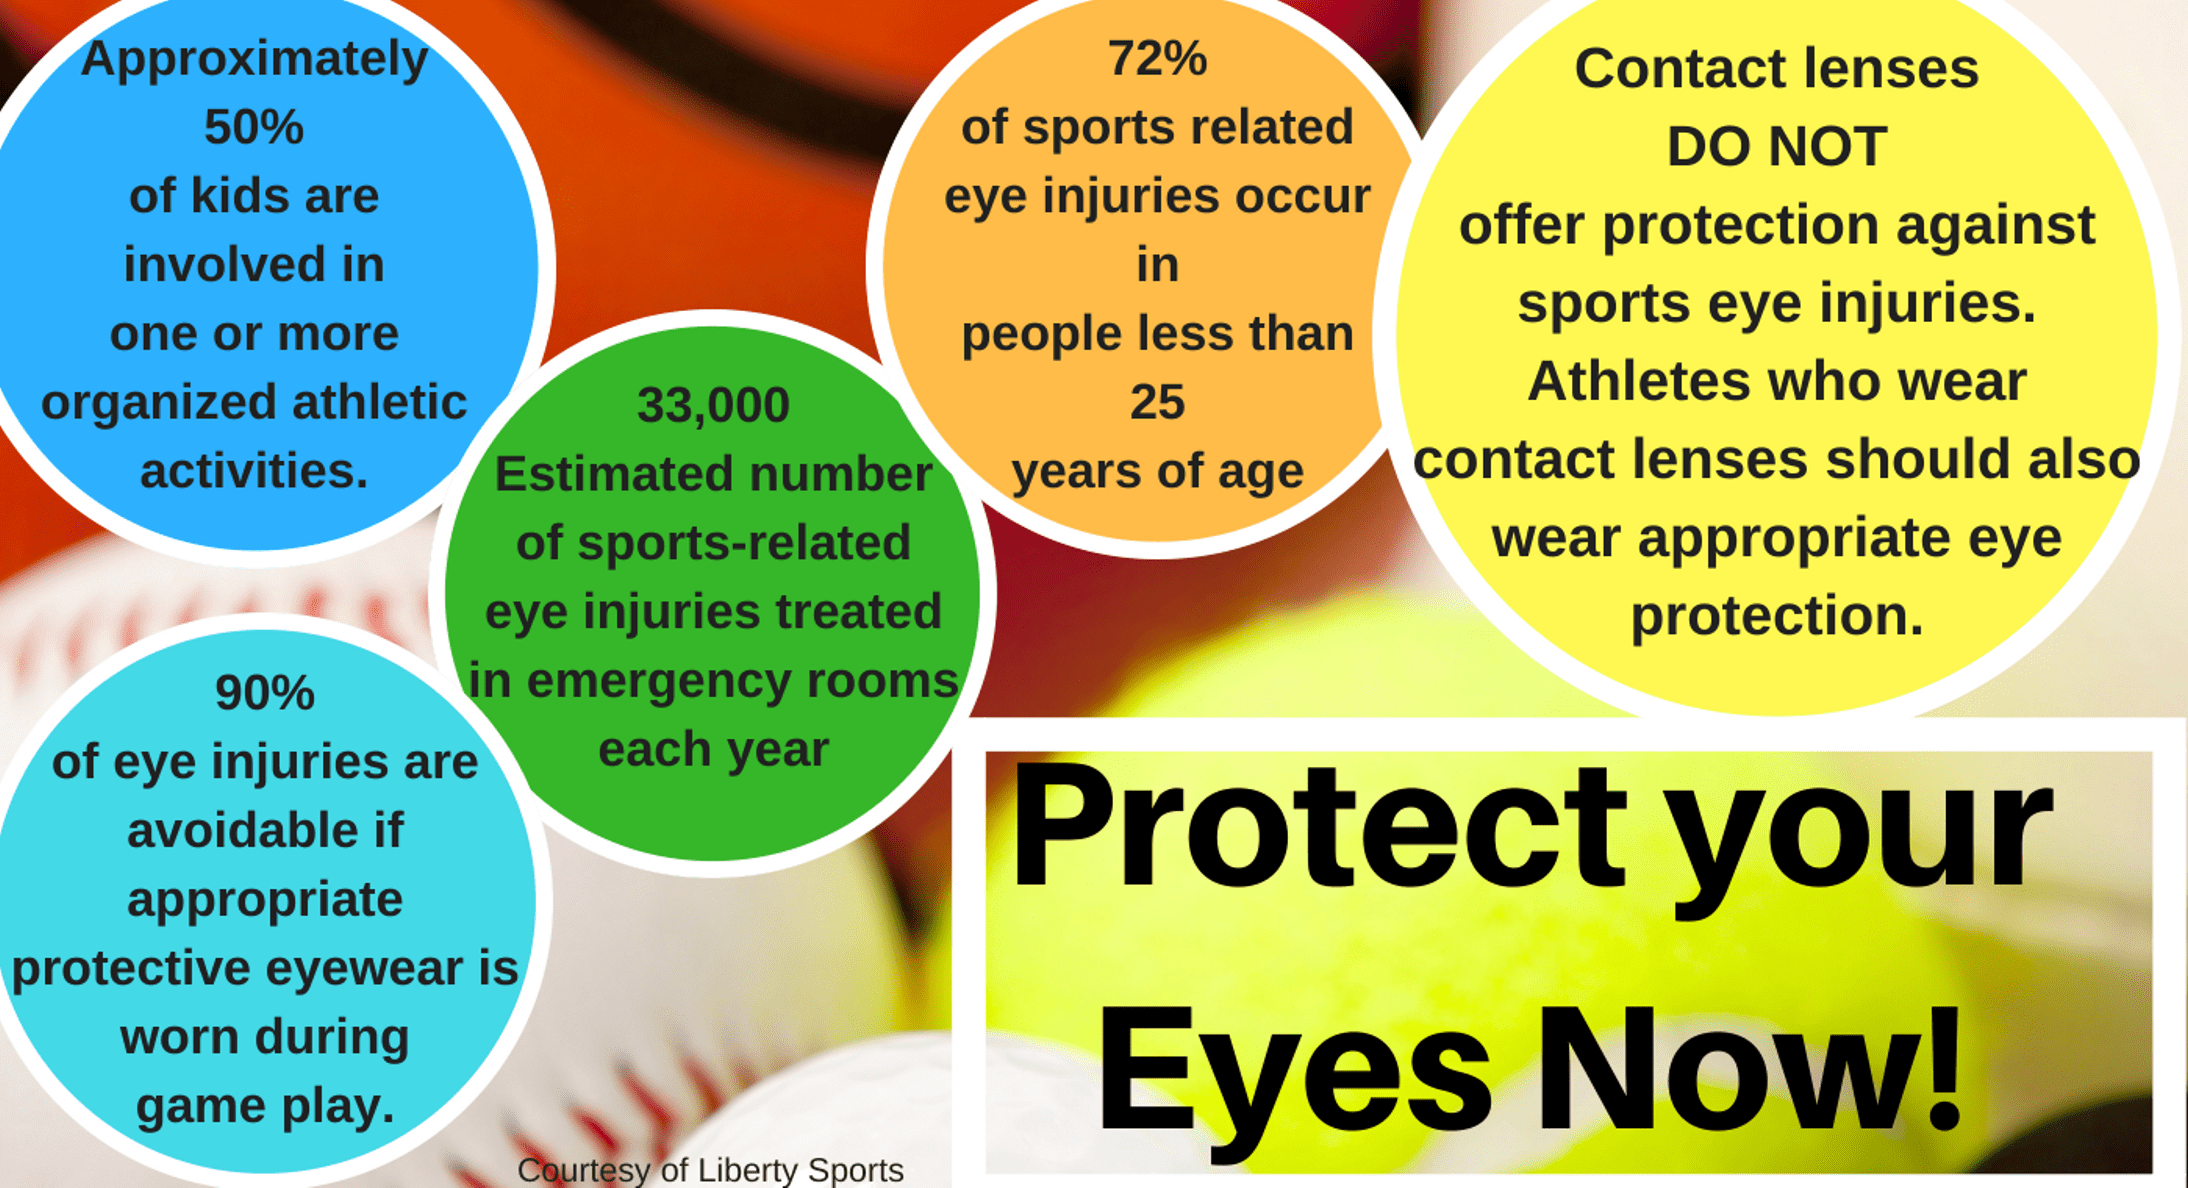 Protect your eyes